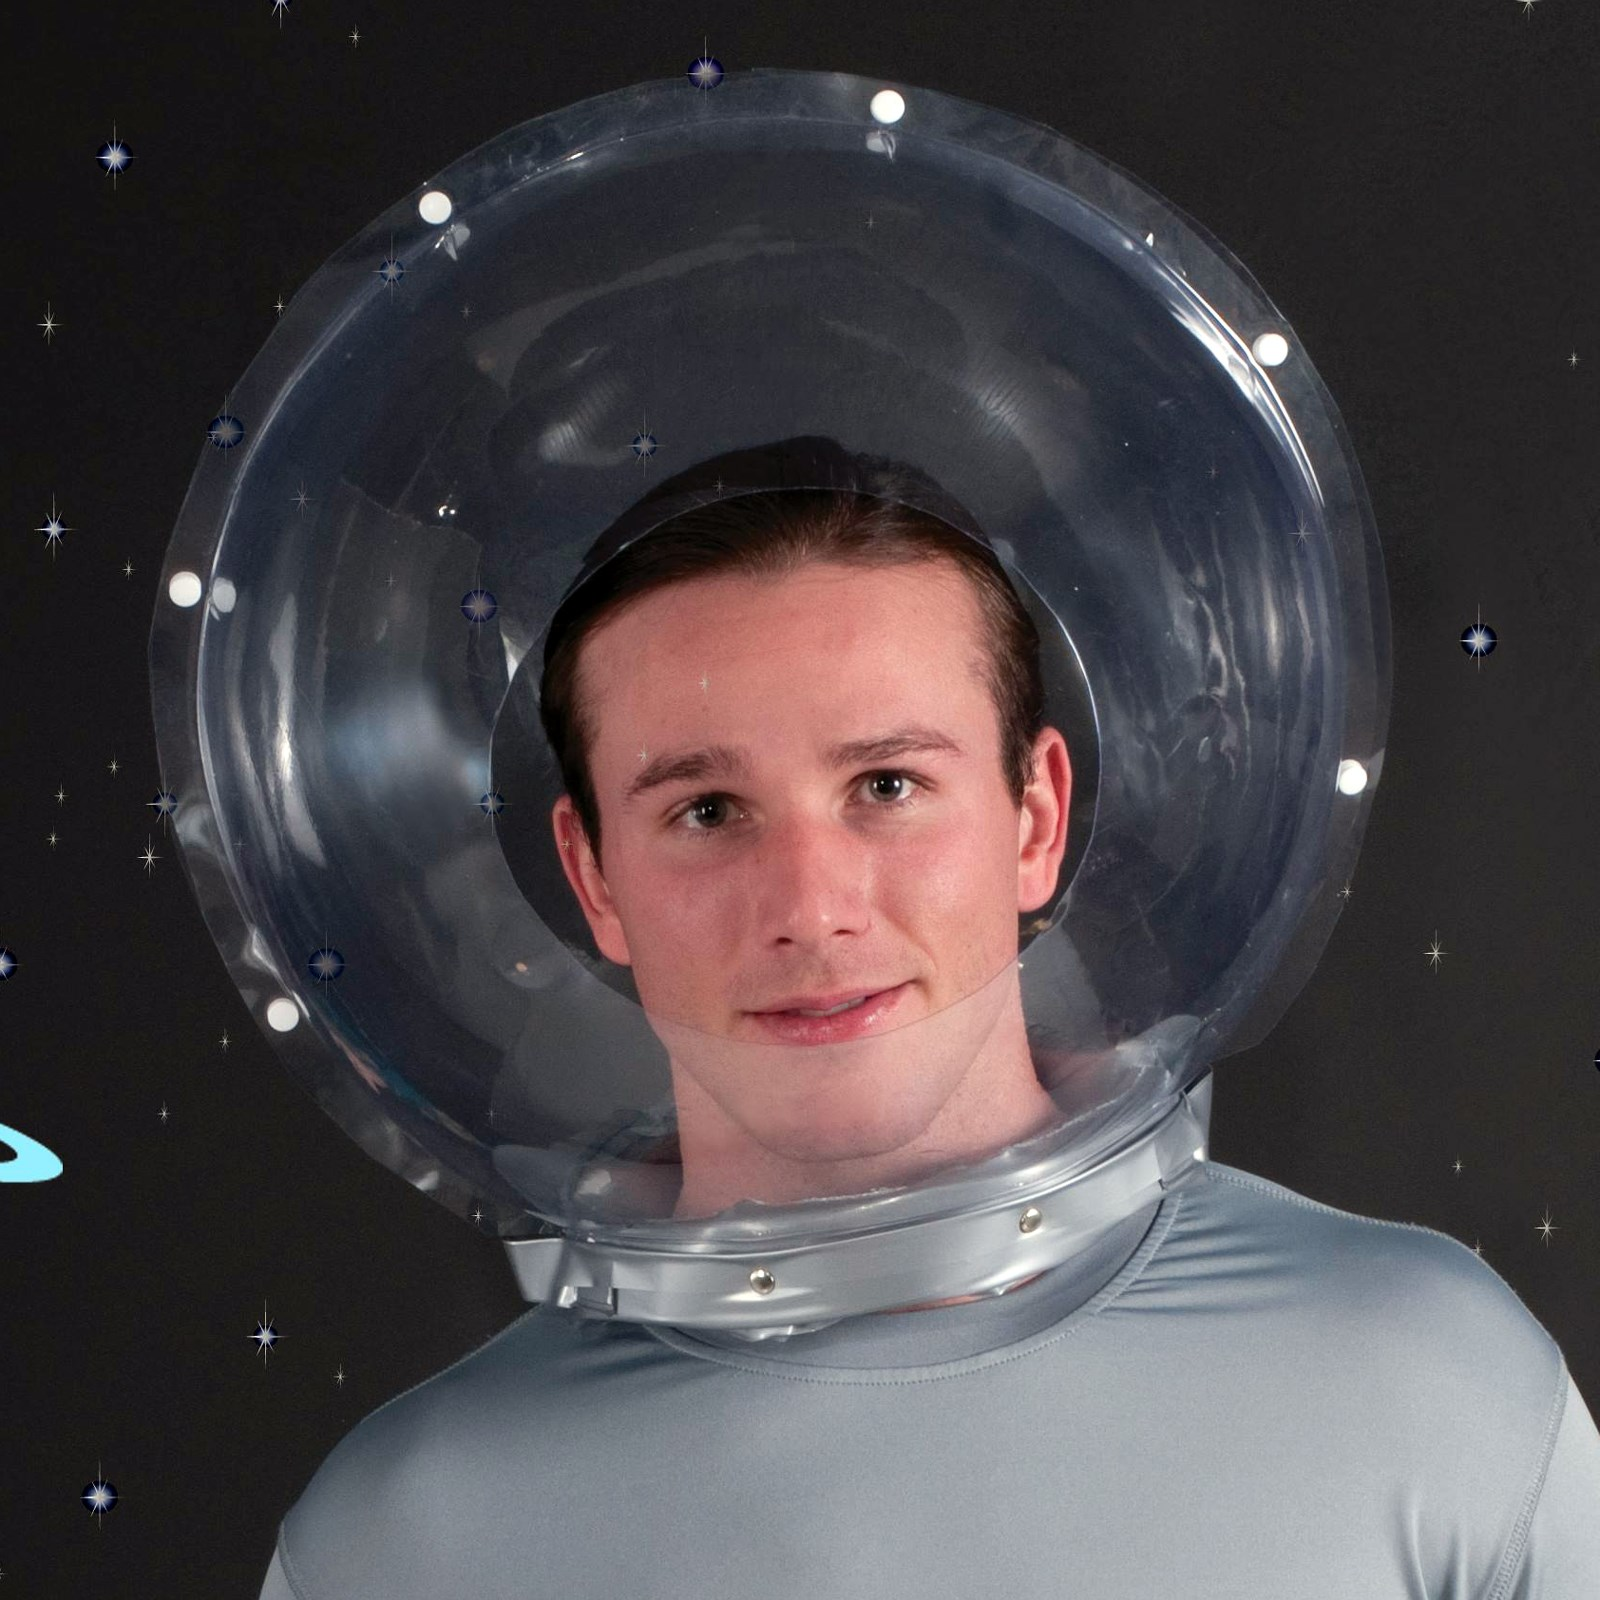 Space Helmet (Adult)